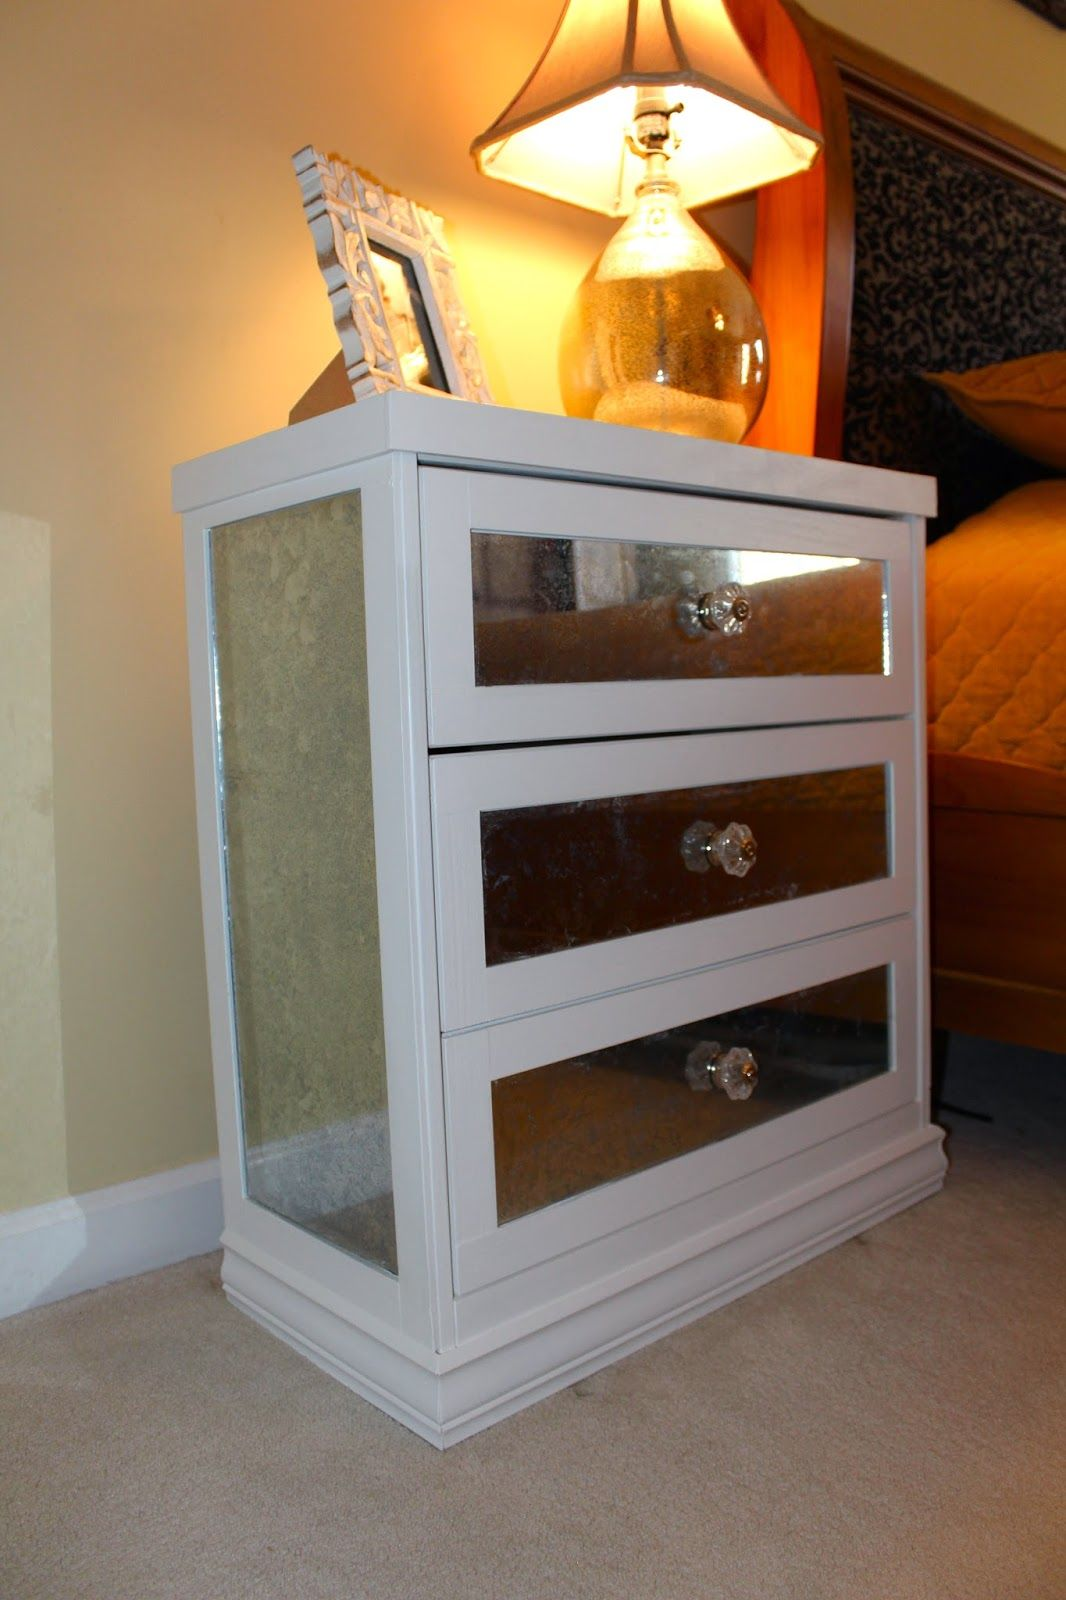 diy mirrored furniture. I Have Admired Mirrored Furniture For A Long Time. Finally Had To Take Diy